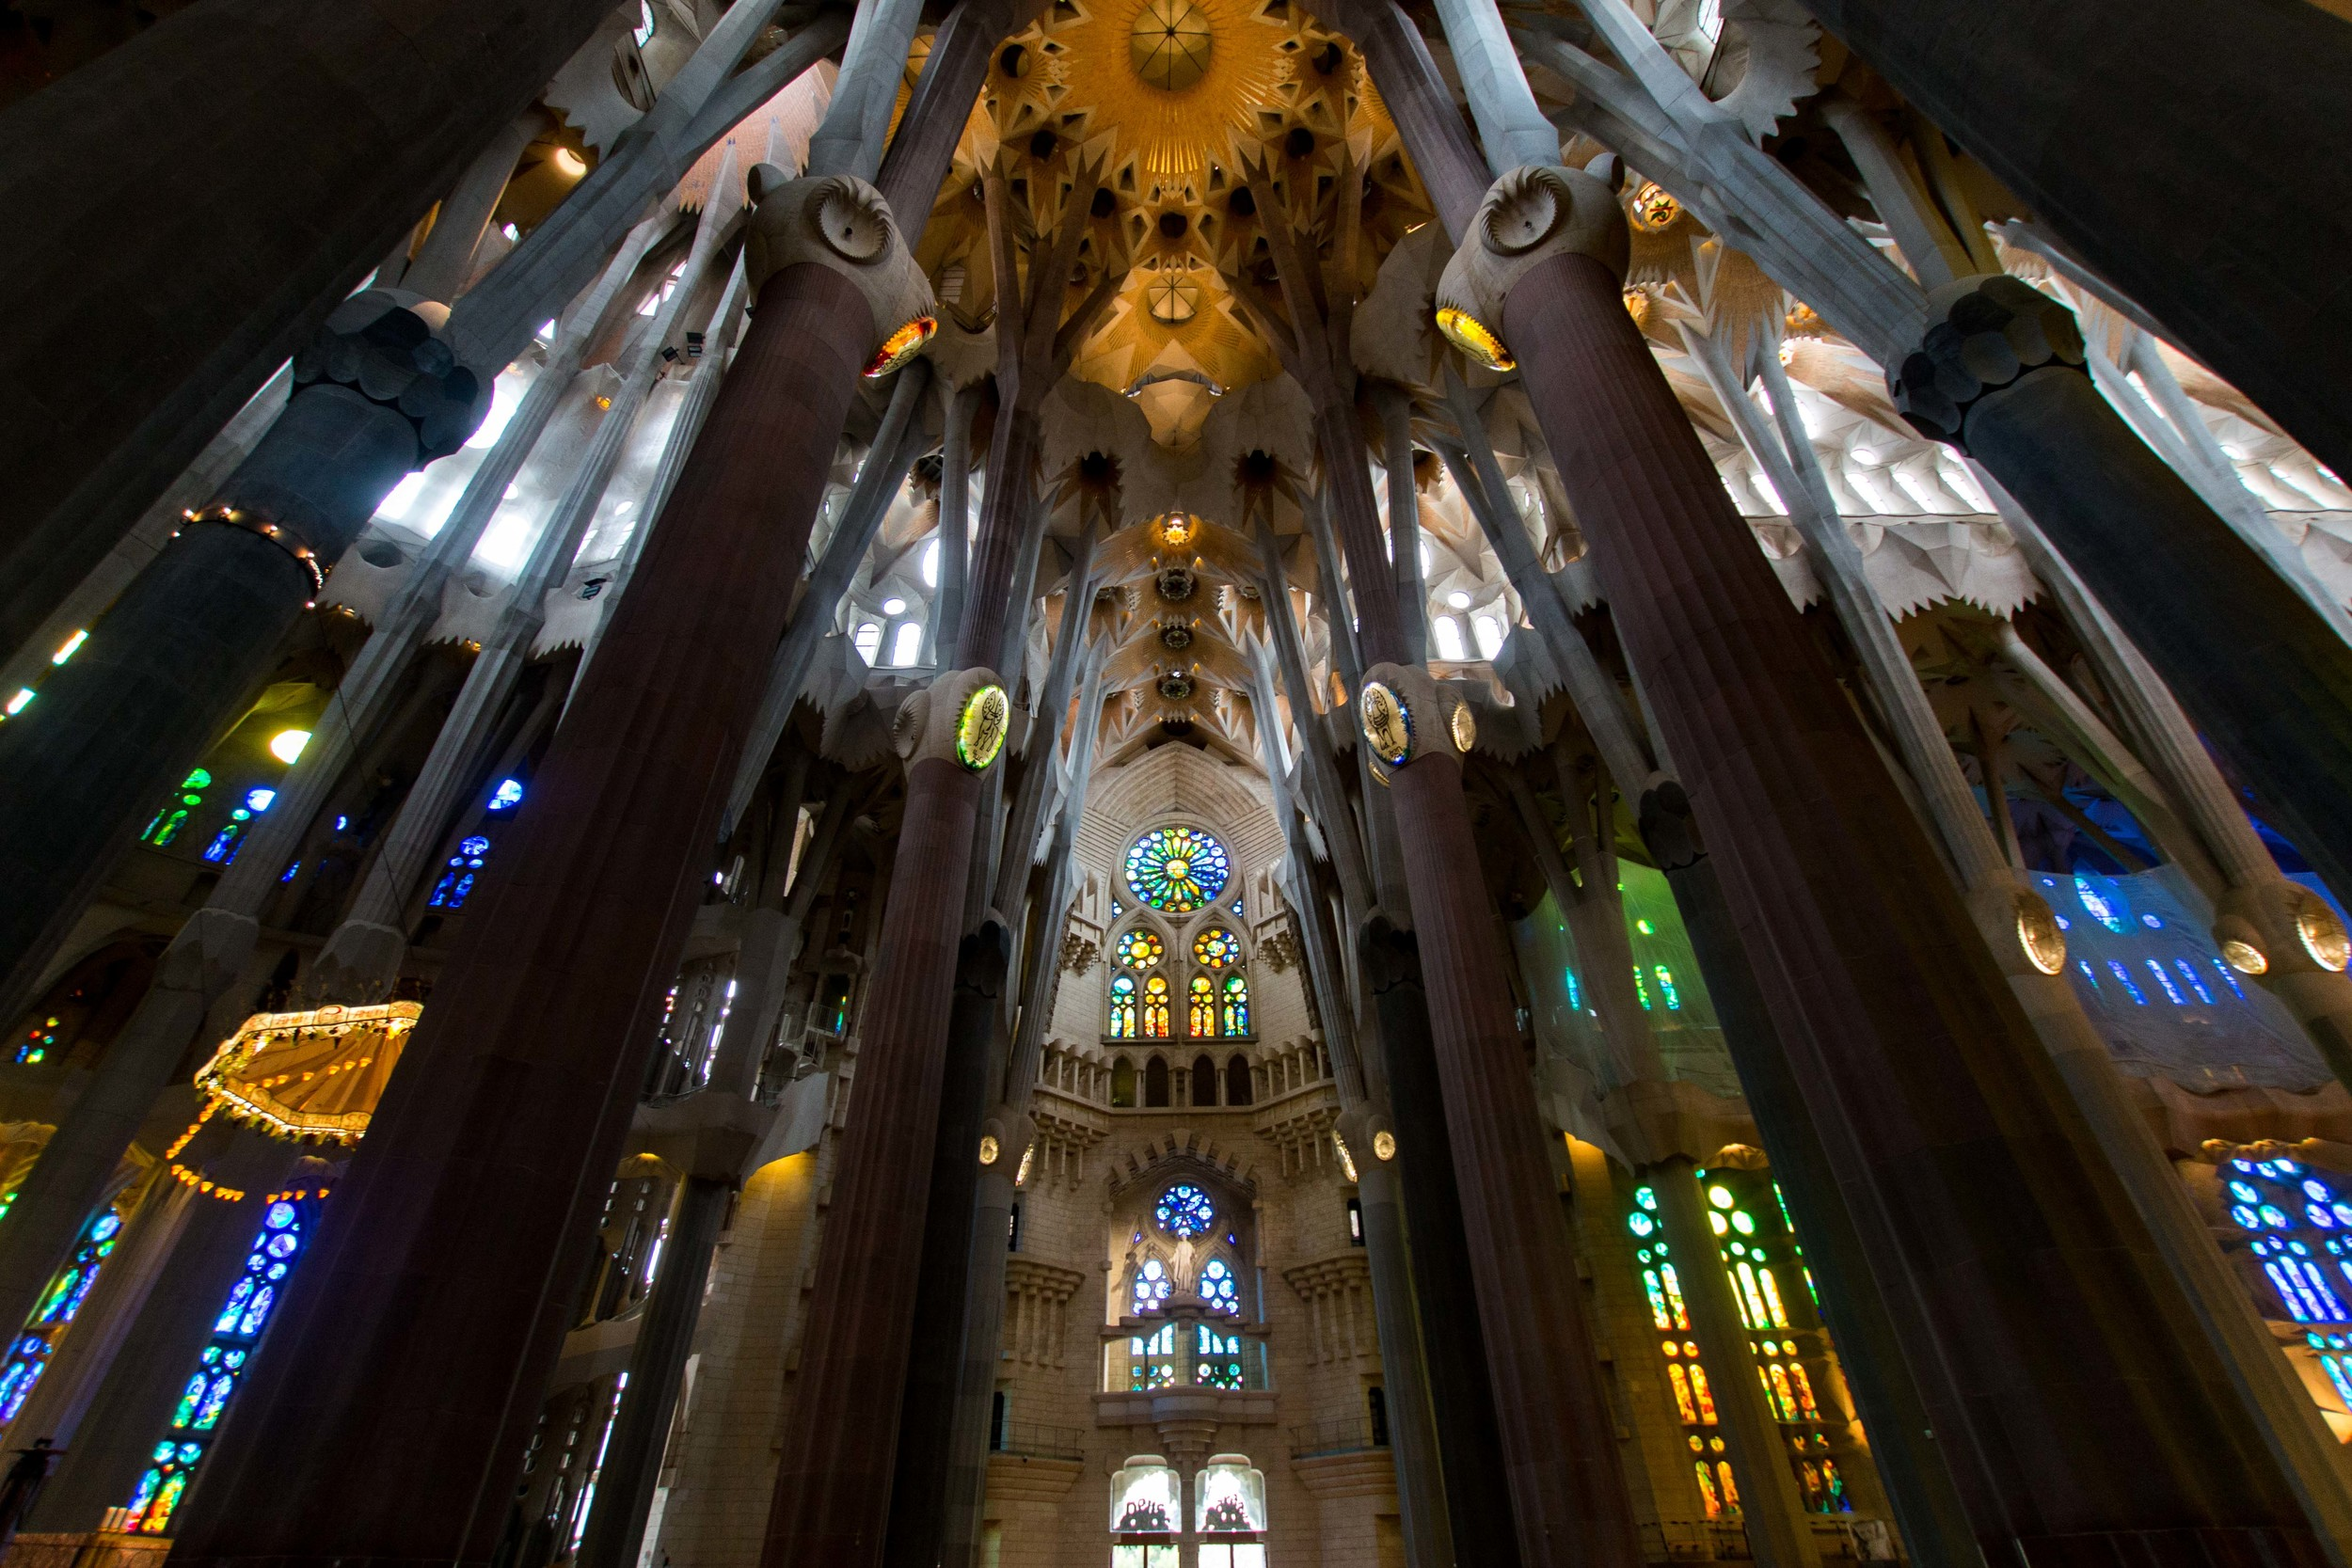 Interior of Sagrada Familia. Pictures do not do this place justice!